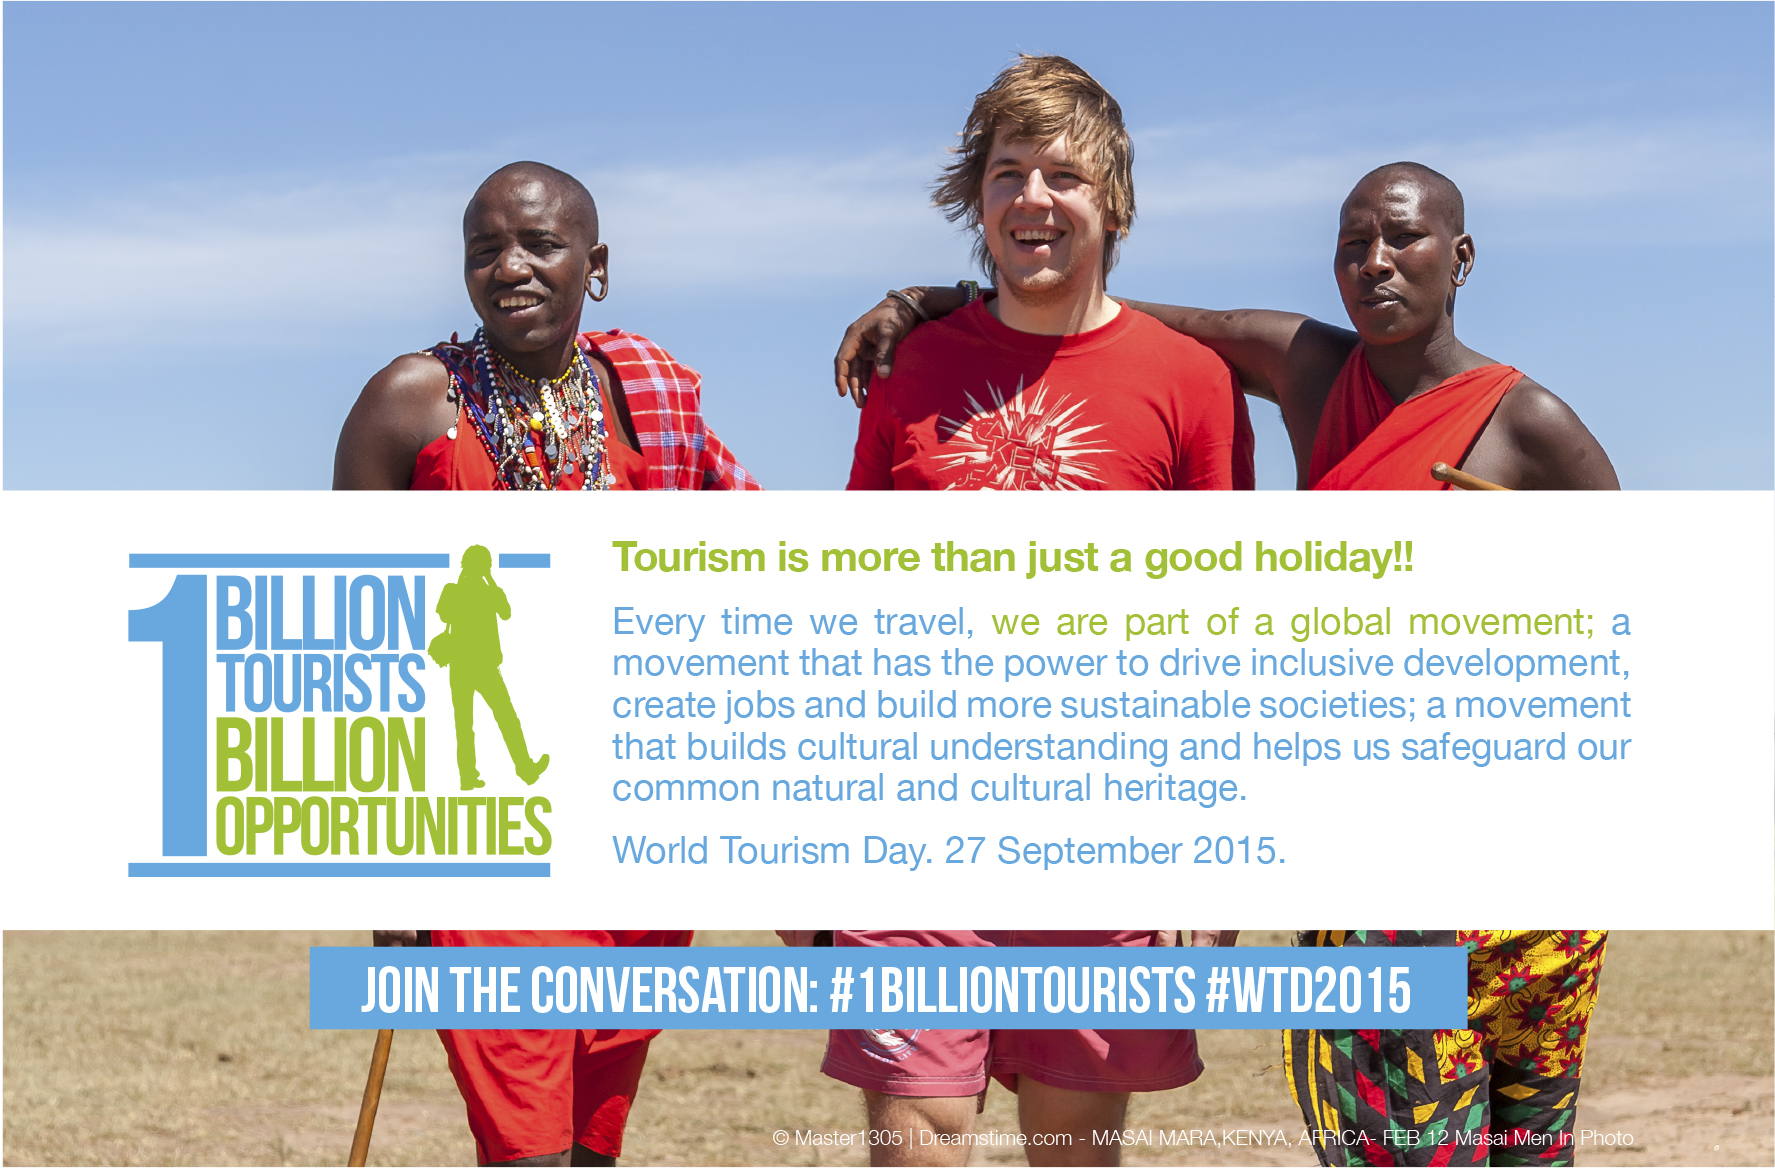 world tourism day how you make a positive difference through wtd postal 1 en